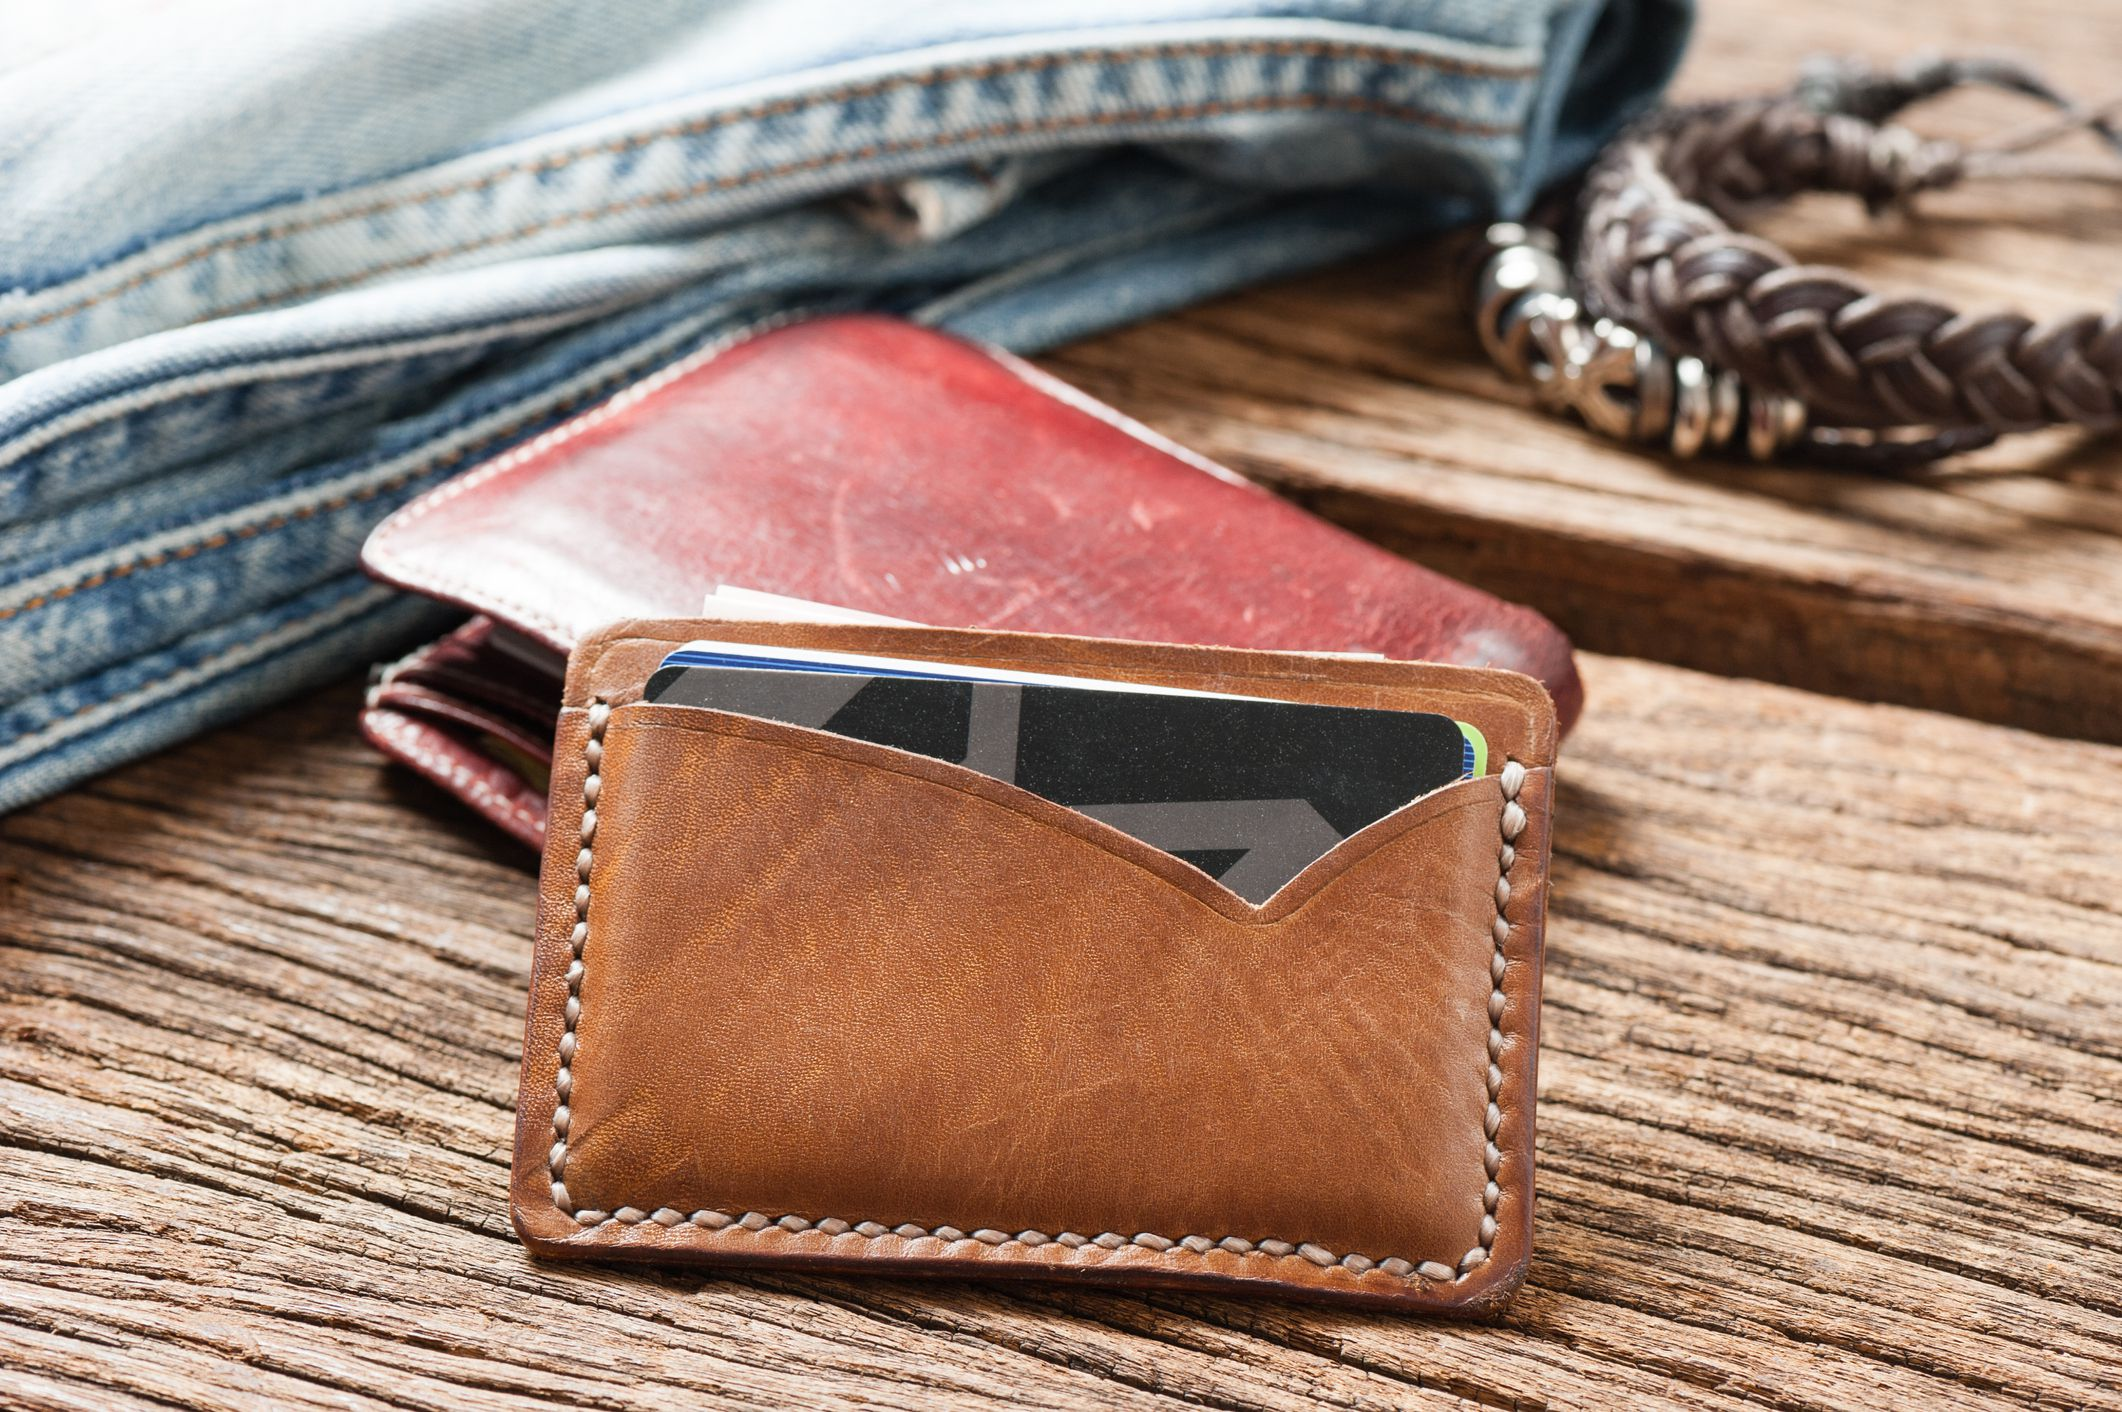 184b9ee03e25 The 8 Best Minimalist Wallets of 2019